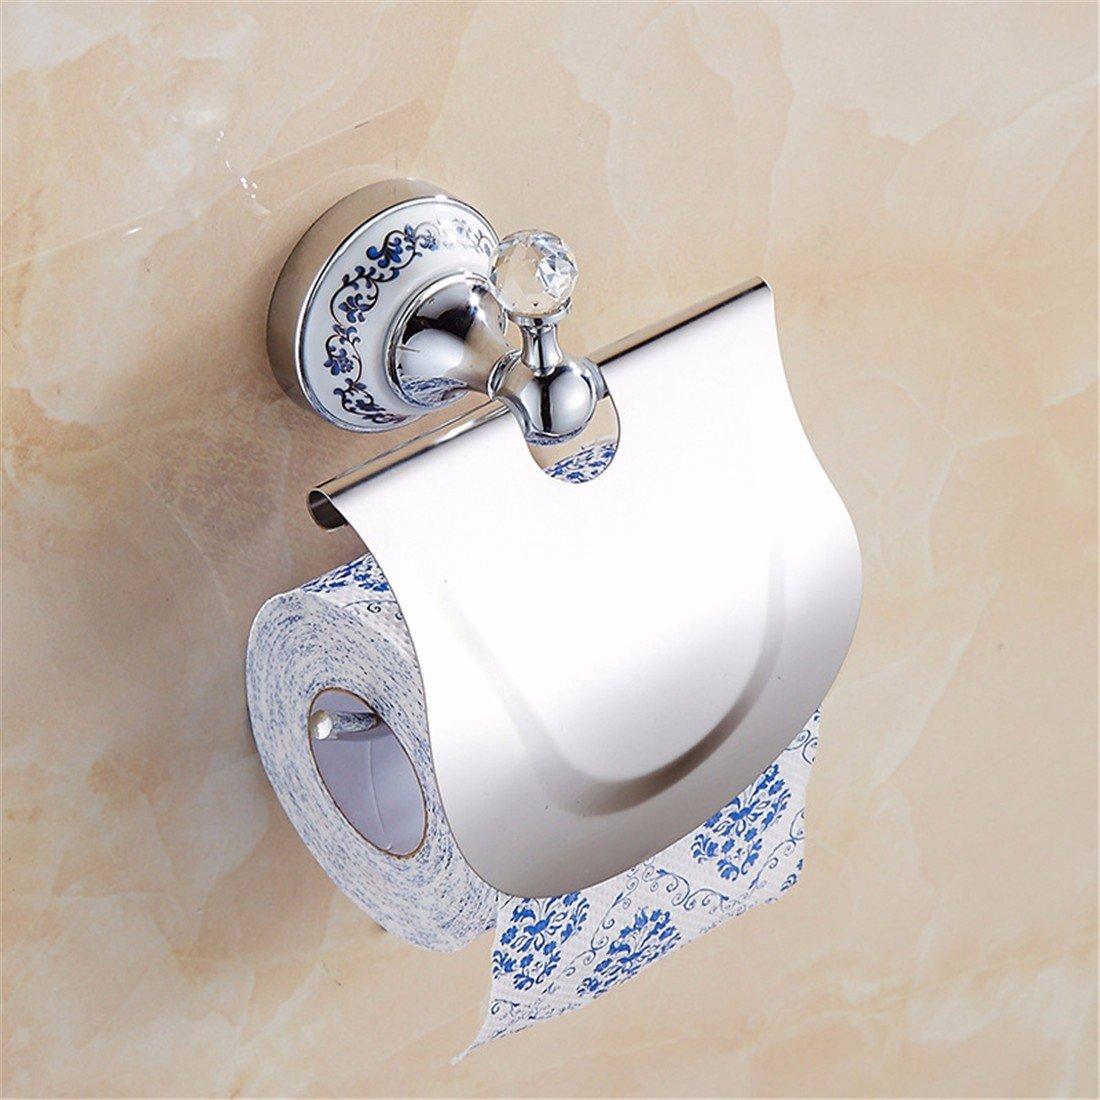 LAONA European style blue and white porcelain Crystal Silver, simple bathroom fittings, towel bar, toilet paper rack,Toilet paper holder